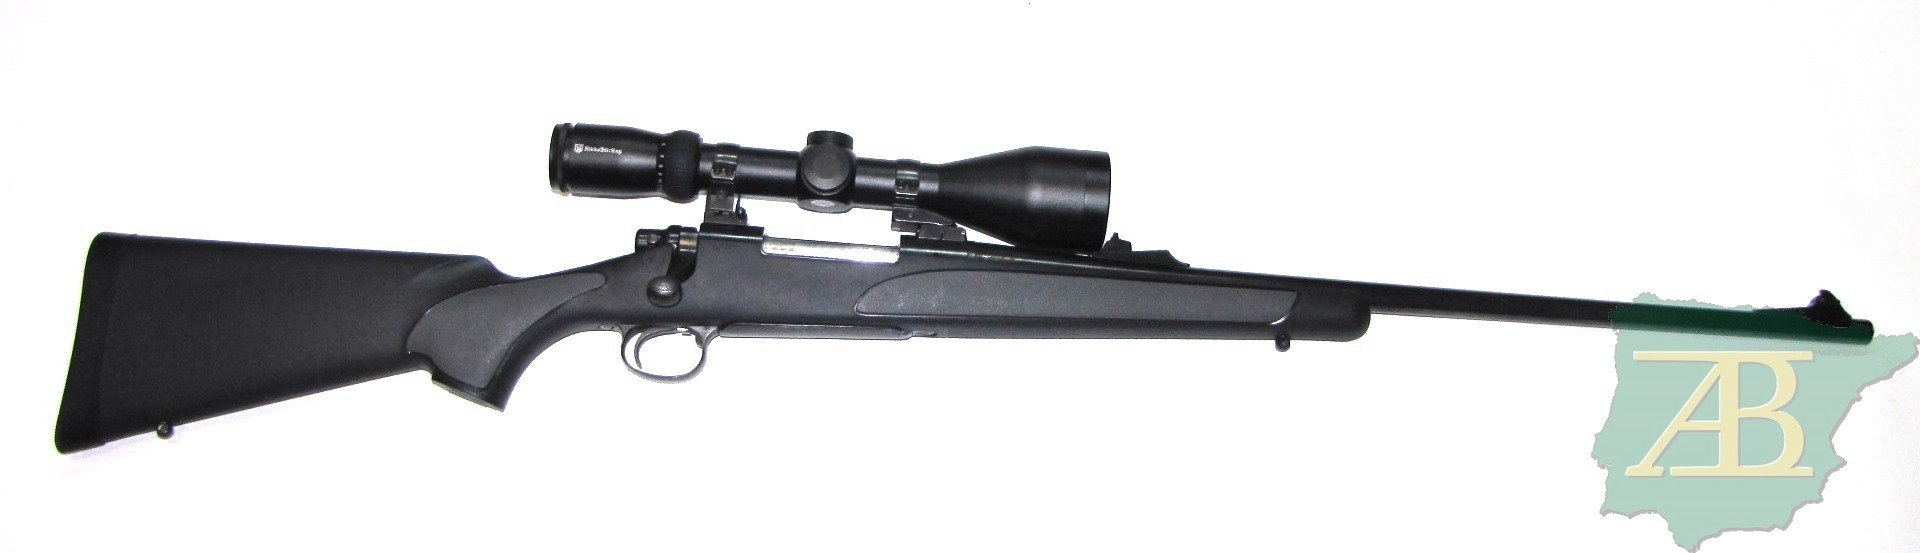 RIFLE DE CERROJO DE CAZA REMINGTON .300 WIN MAG Ref. 4748